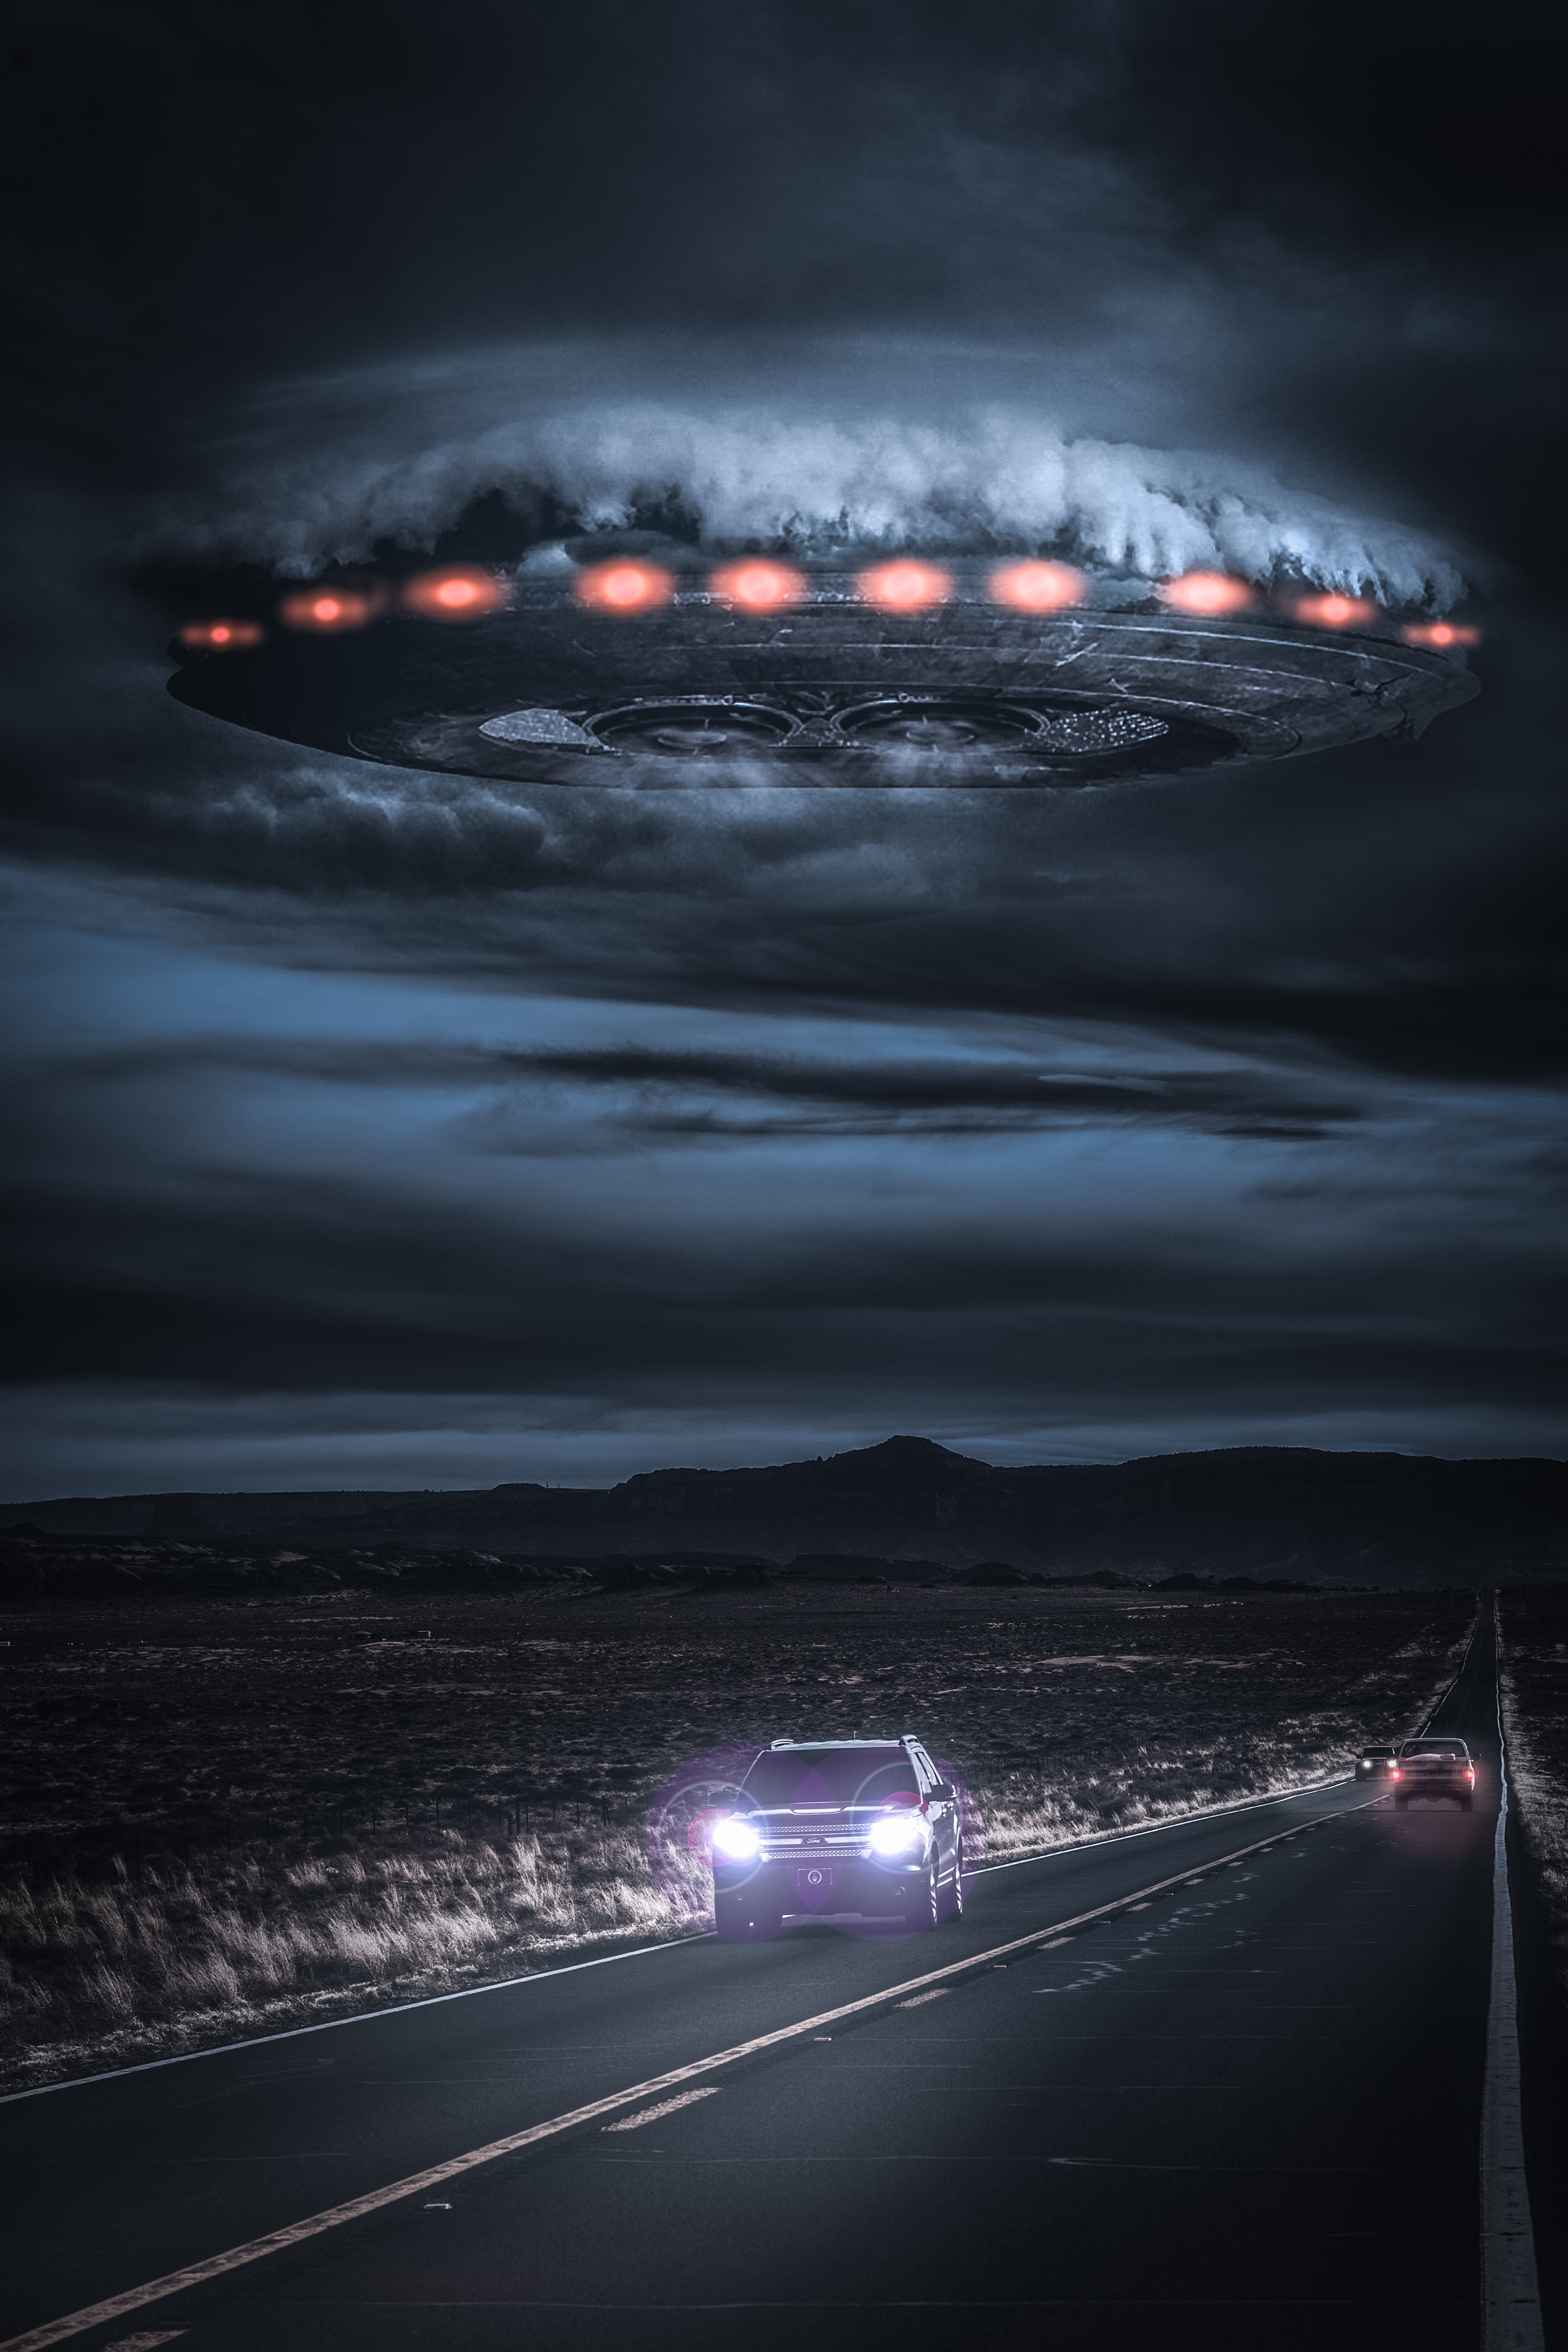 an introduction and a brief history of ufos and aliens on earth Ufos and the historians posted on april 18, 2017 by greg eghigian greg eghigian is associate professor of modern history at penn state university (usa) he specializes in the history of the human sciences and medicine his most recent books include the routledge history of madness and mental health (2017) and the corrigible and the.